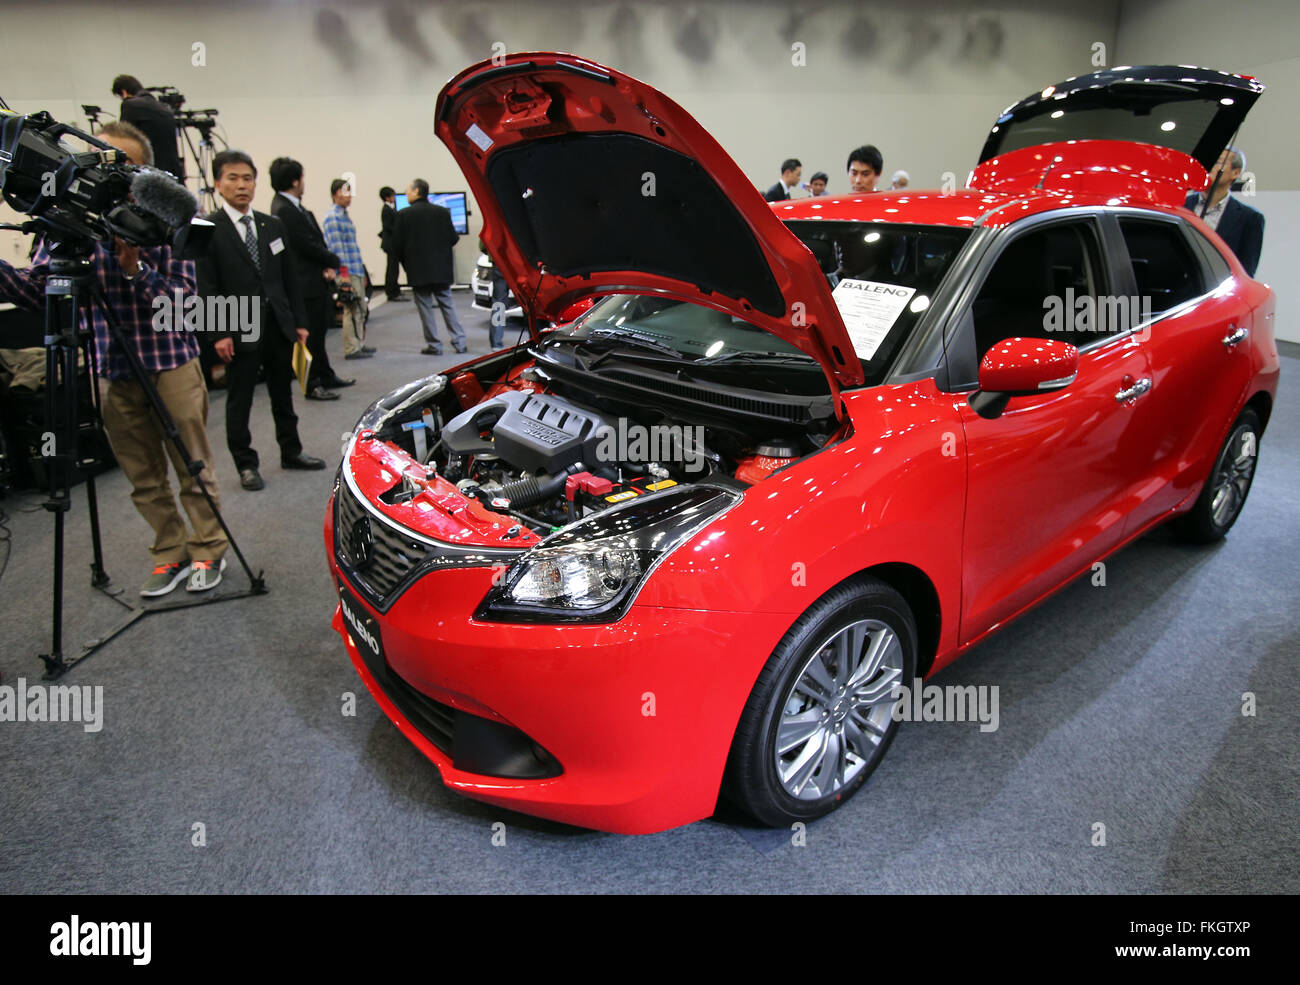 Tokyo, Japan. 9th Mar, 2016. Japanese automaker Suzuki Motor introduces the new compact vehicle 'Baleno' - Stock Image